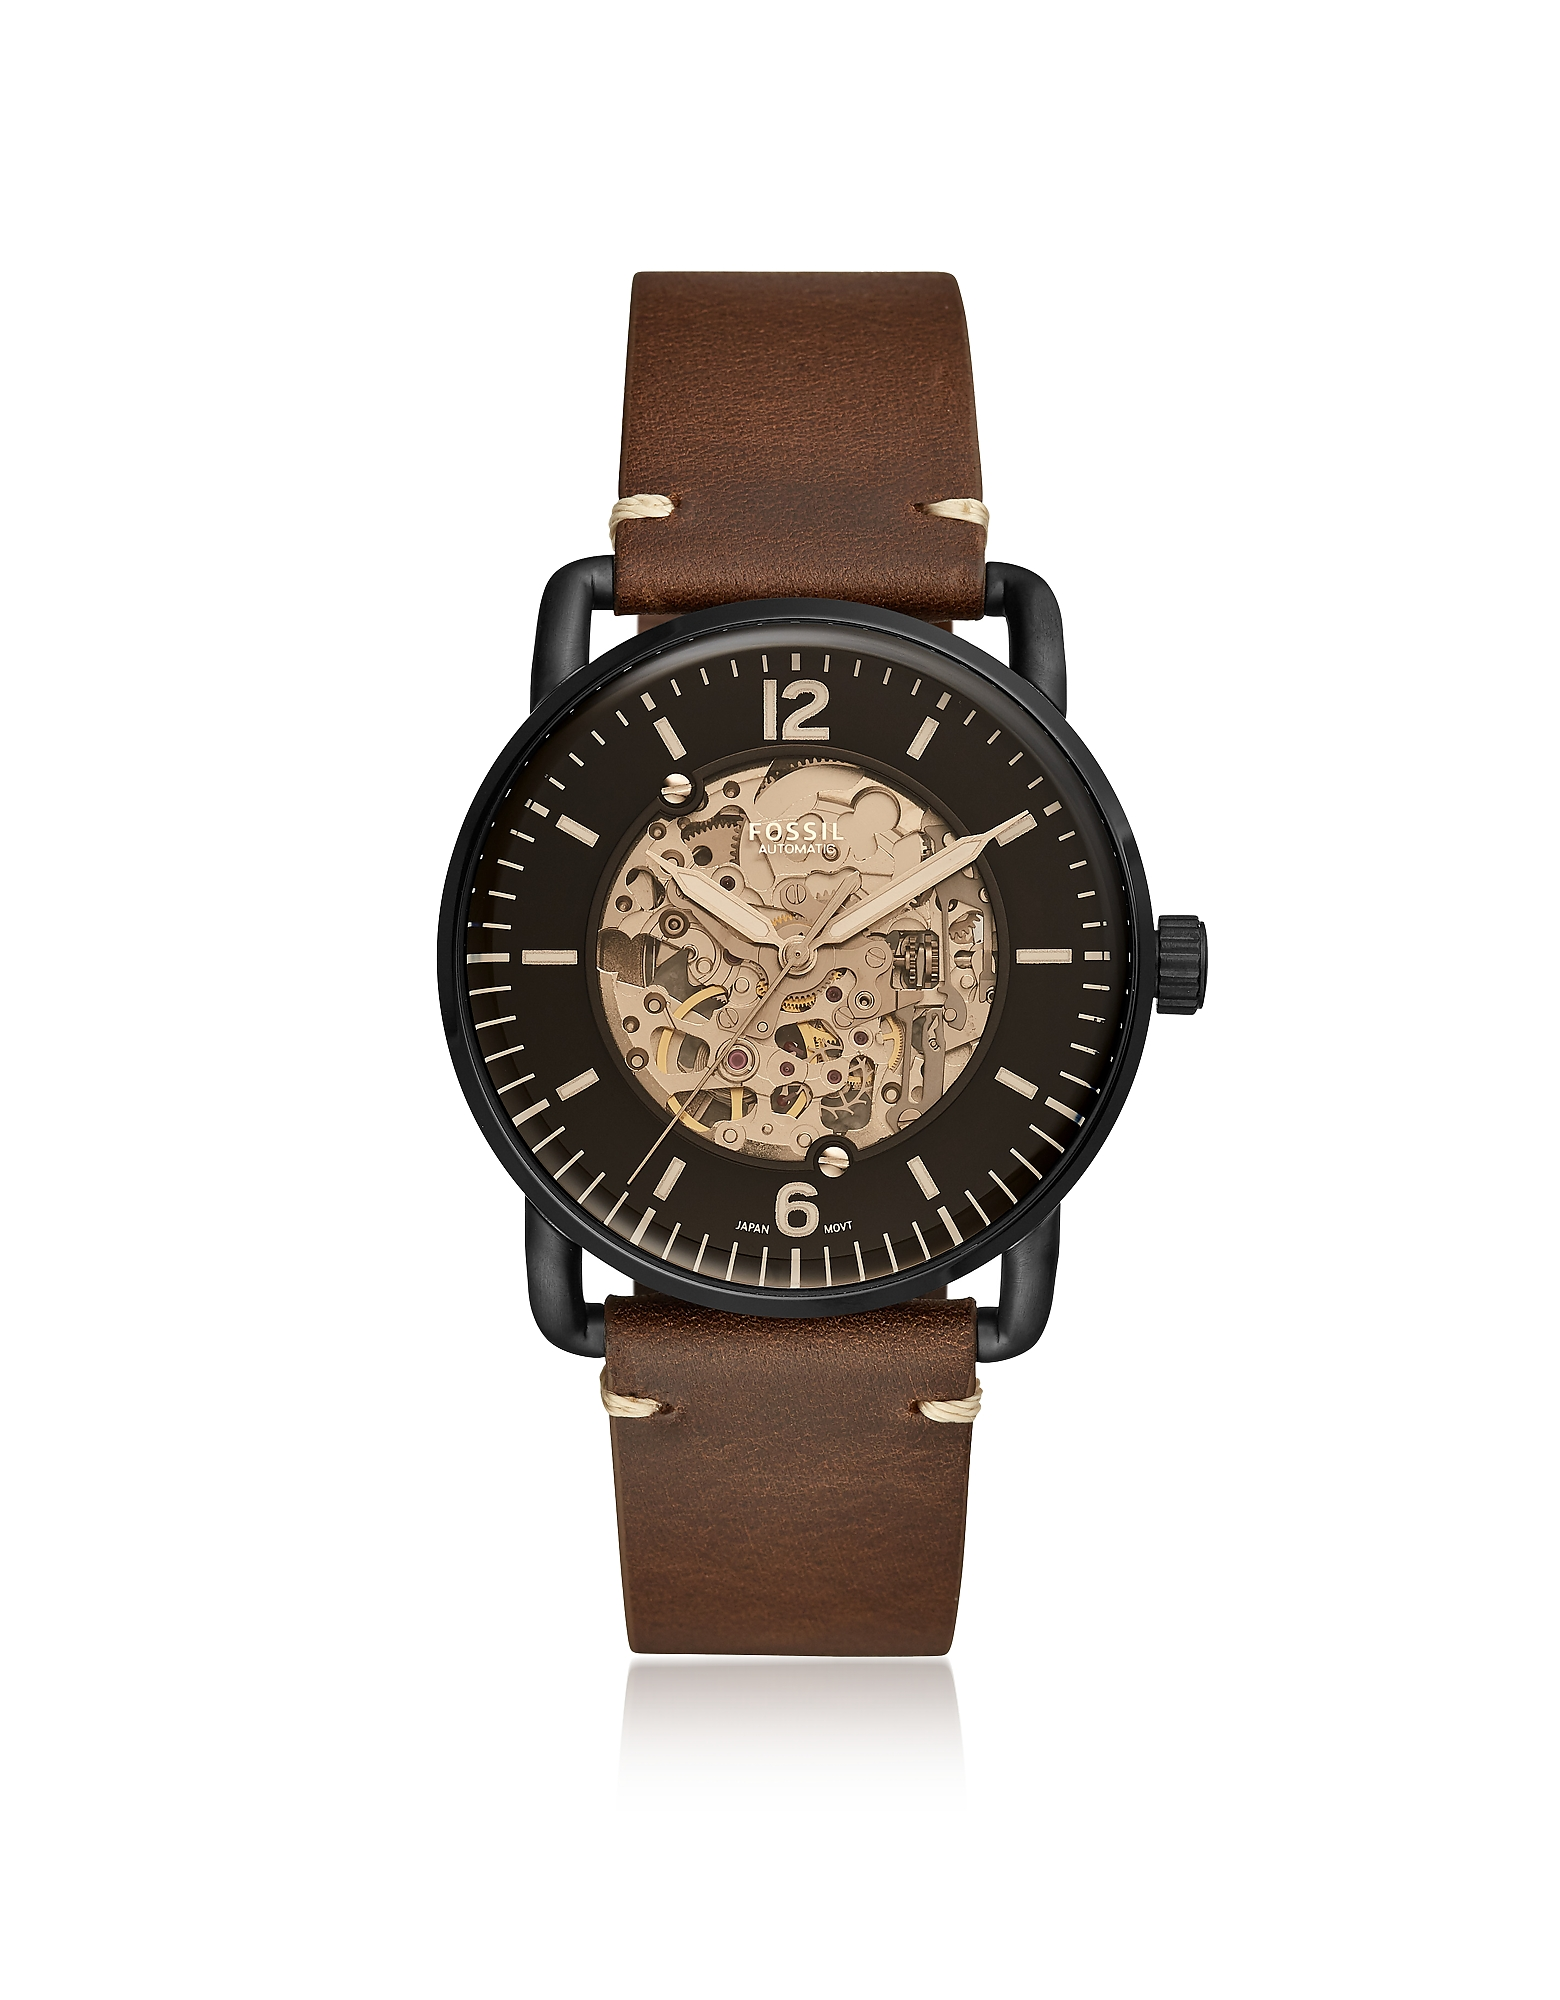 Fossil Men's Watches, Commuter Automatic Brown Leather Men's Watch